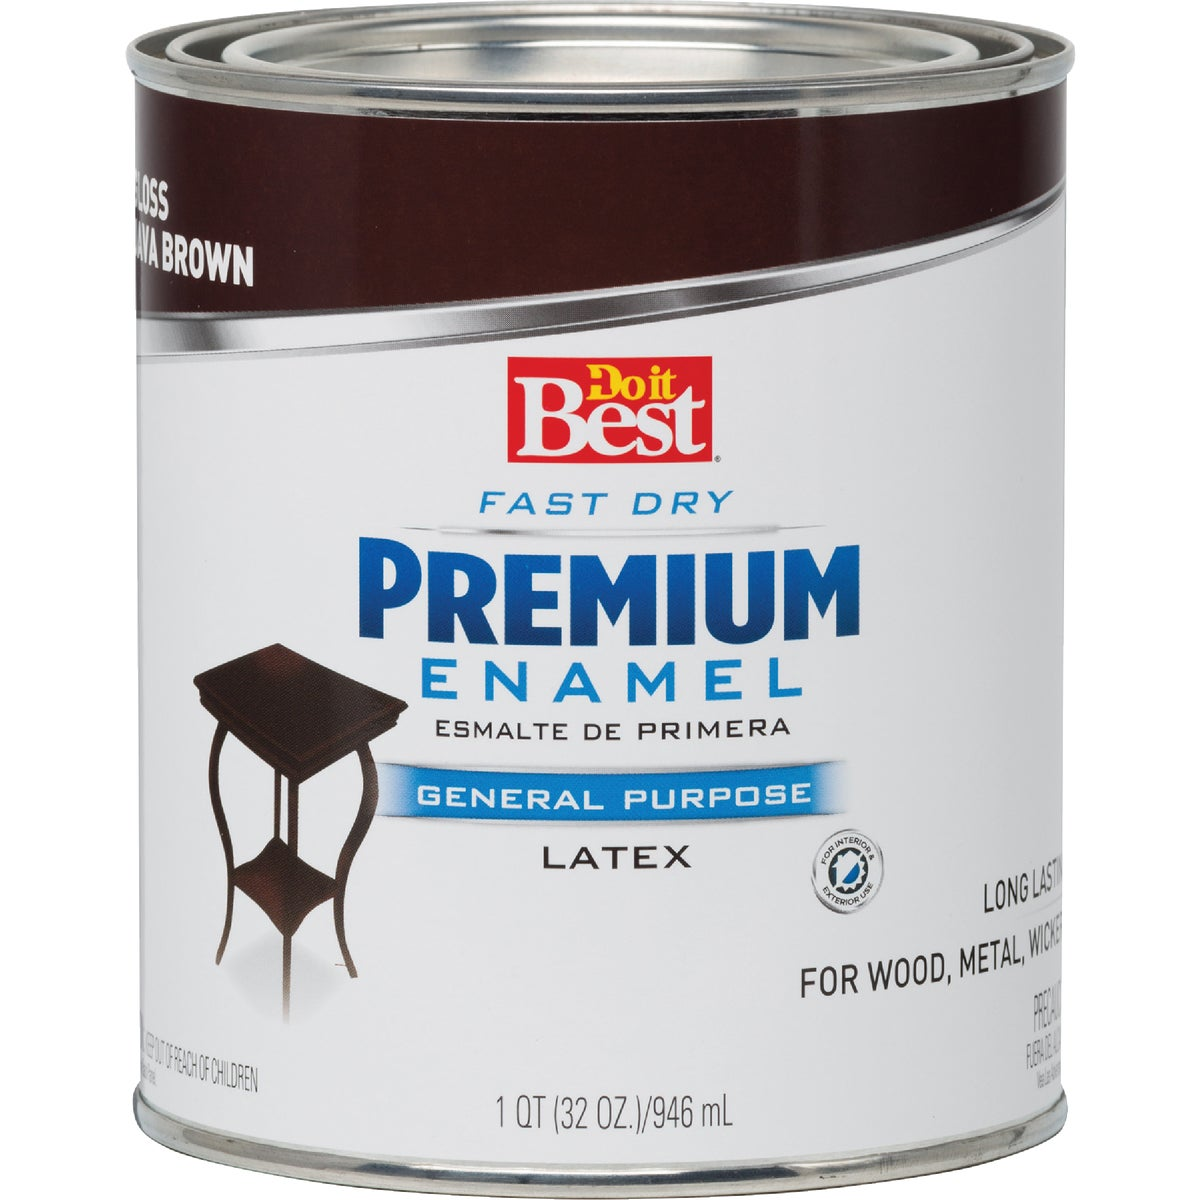 JAVA BROWN LATEX ENAMEL - 2207 by Rustoleum